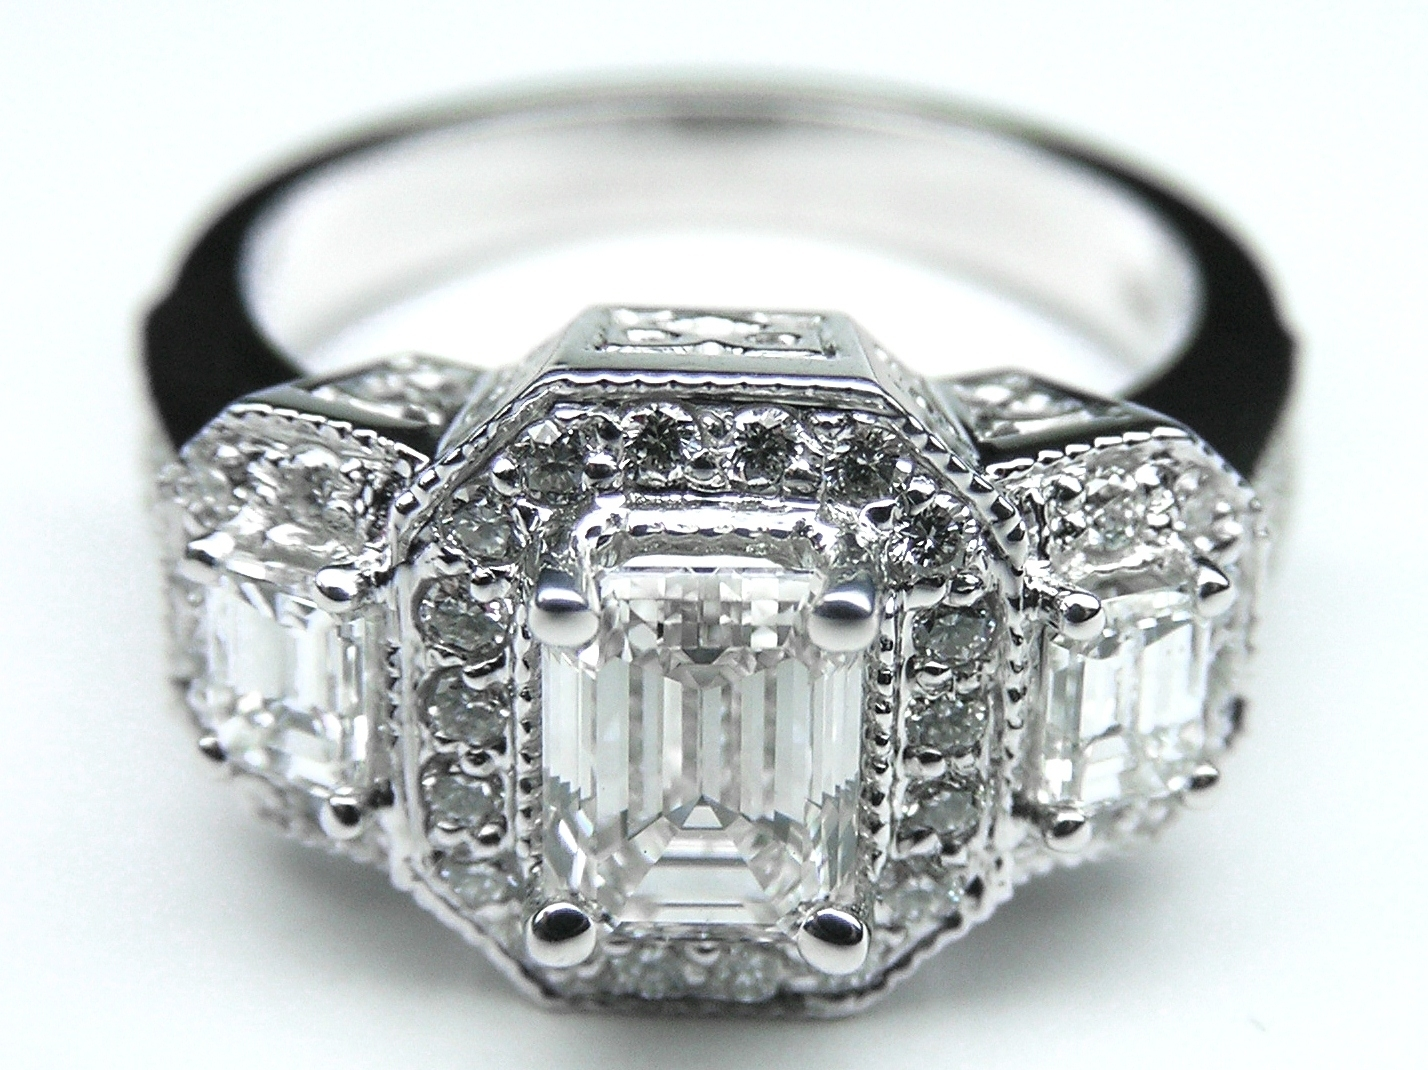 Engagement Ring  Vintage Style Three Stone Emerald Cut Diamond For Most Recent Diamond Vintage Style Engagement Rings (View 7 of 15)